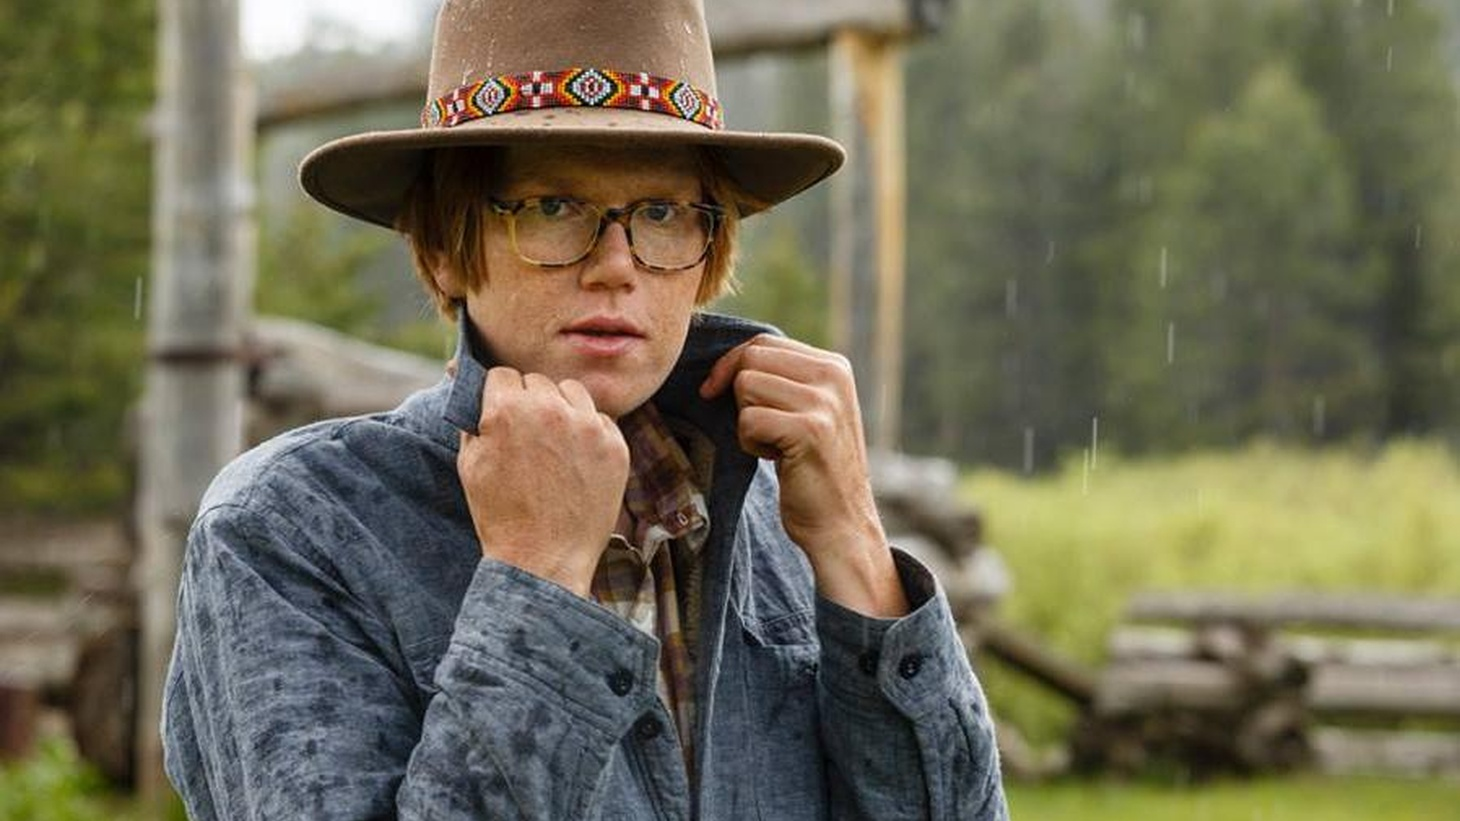 Singer-songwriter Brett Dennen has been around long enough - nearly a decade as a recording artist - to have established a recognized sound.